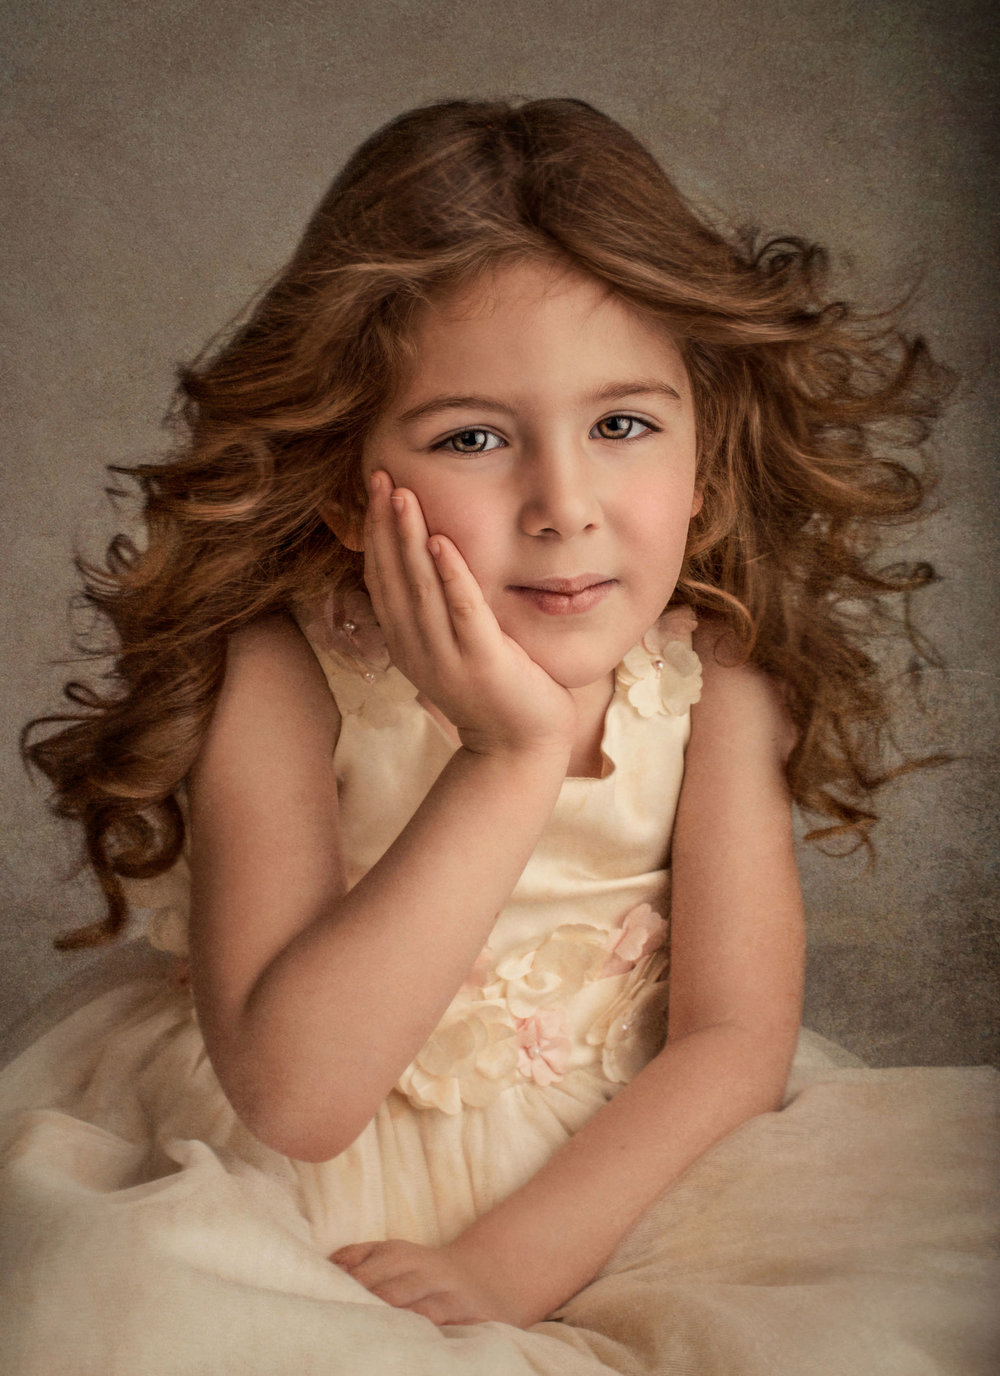 barbara_macferrin_photography_boulder_colorado_80303_fine_art_children_girl_long_hair_dress.jpg